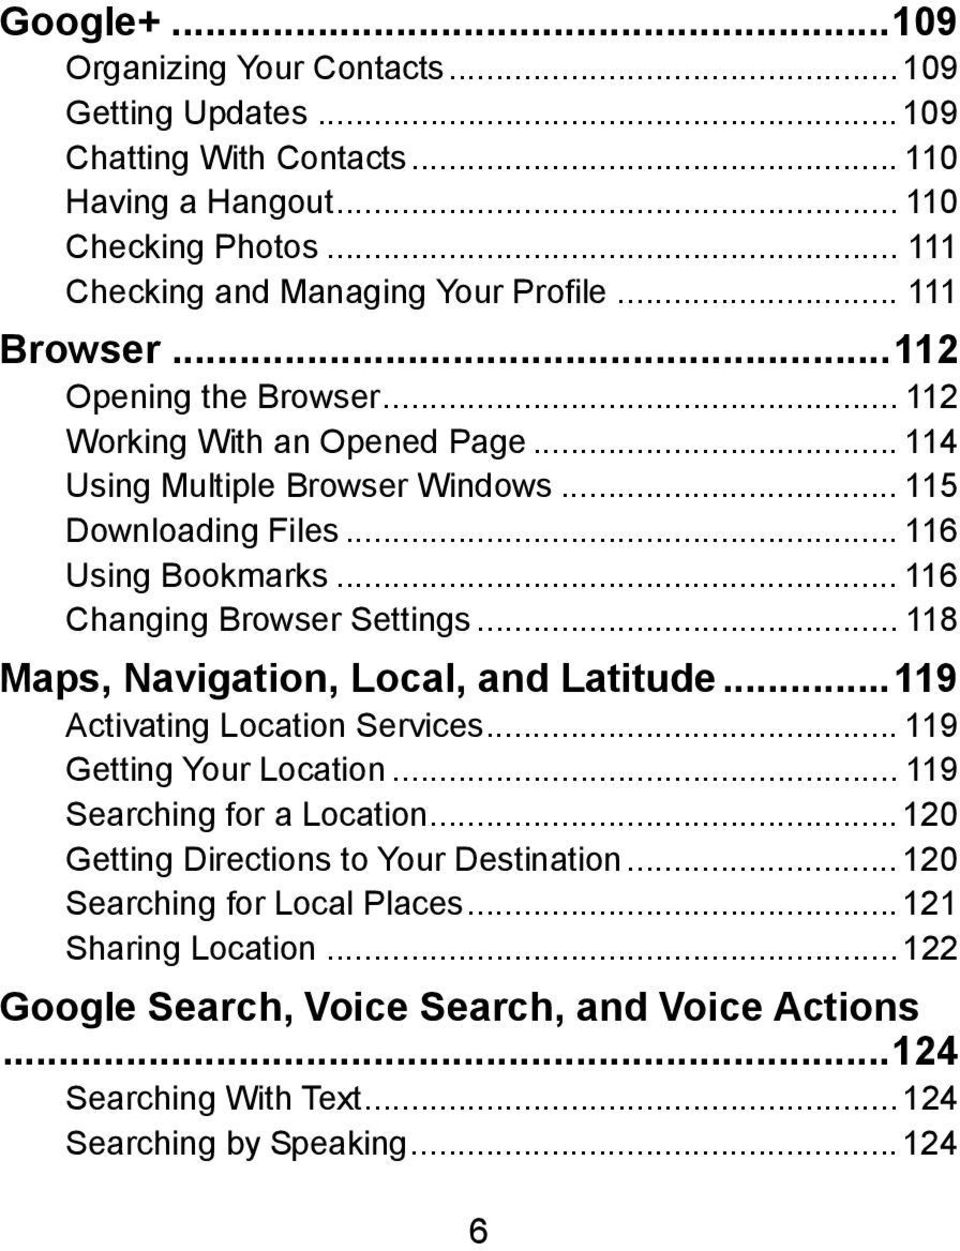 .. 116 Changing Browser Settings... 118 Maps, Navigation, Local, and Latitude...119 Activating Location Services... 119 Getting Your Location... 119 Searching for a Location.